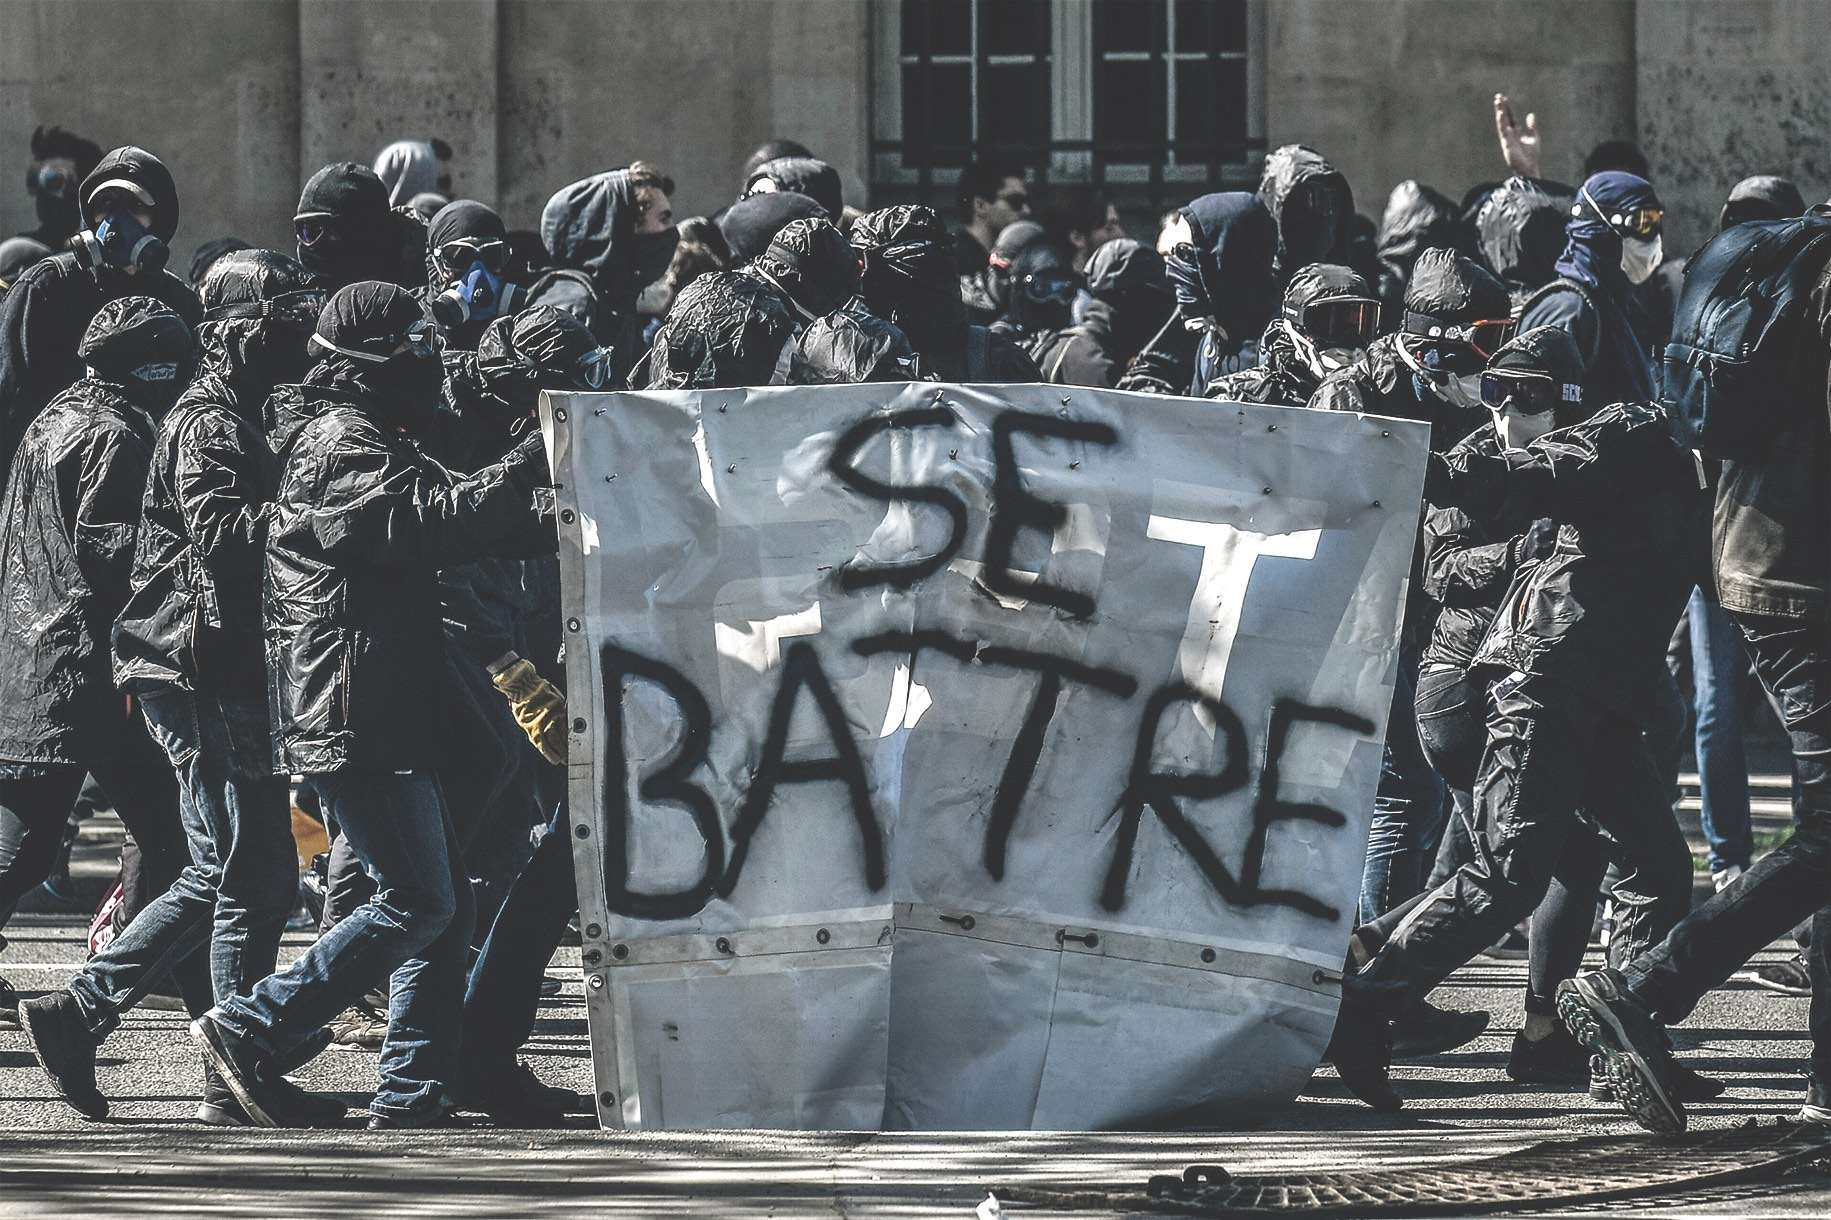 Des black blocs lors d'une manifestation, à Paris, le 19 avril 2018.